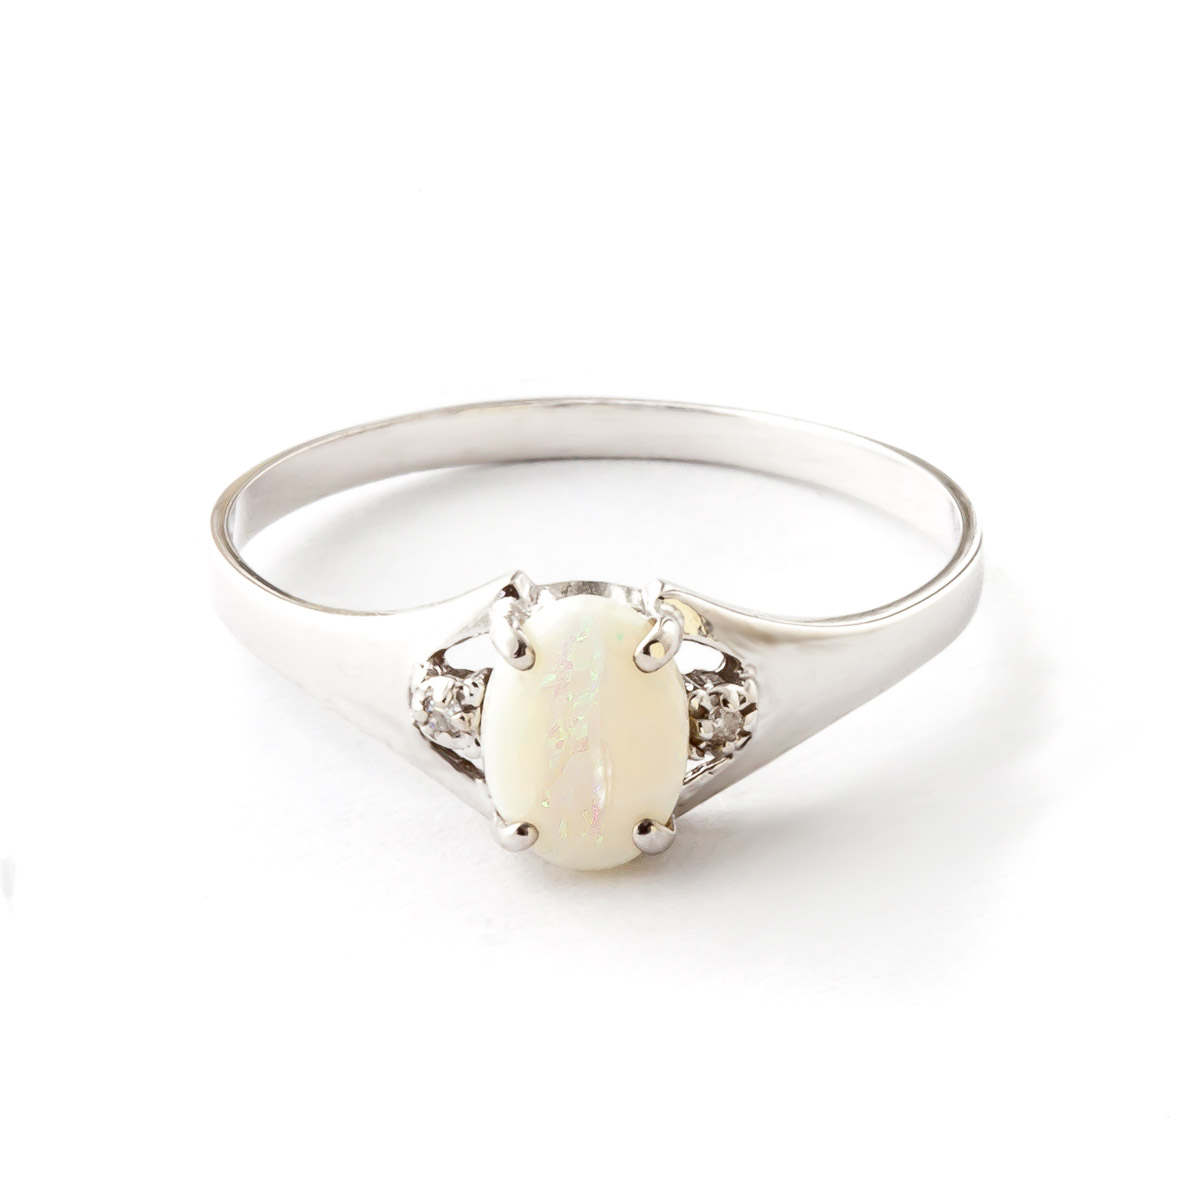 Opal & Diamond Desire Ring in 18ct White Gold